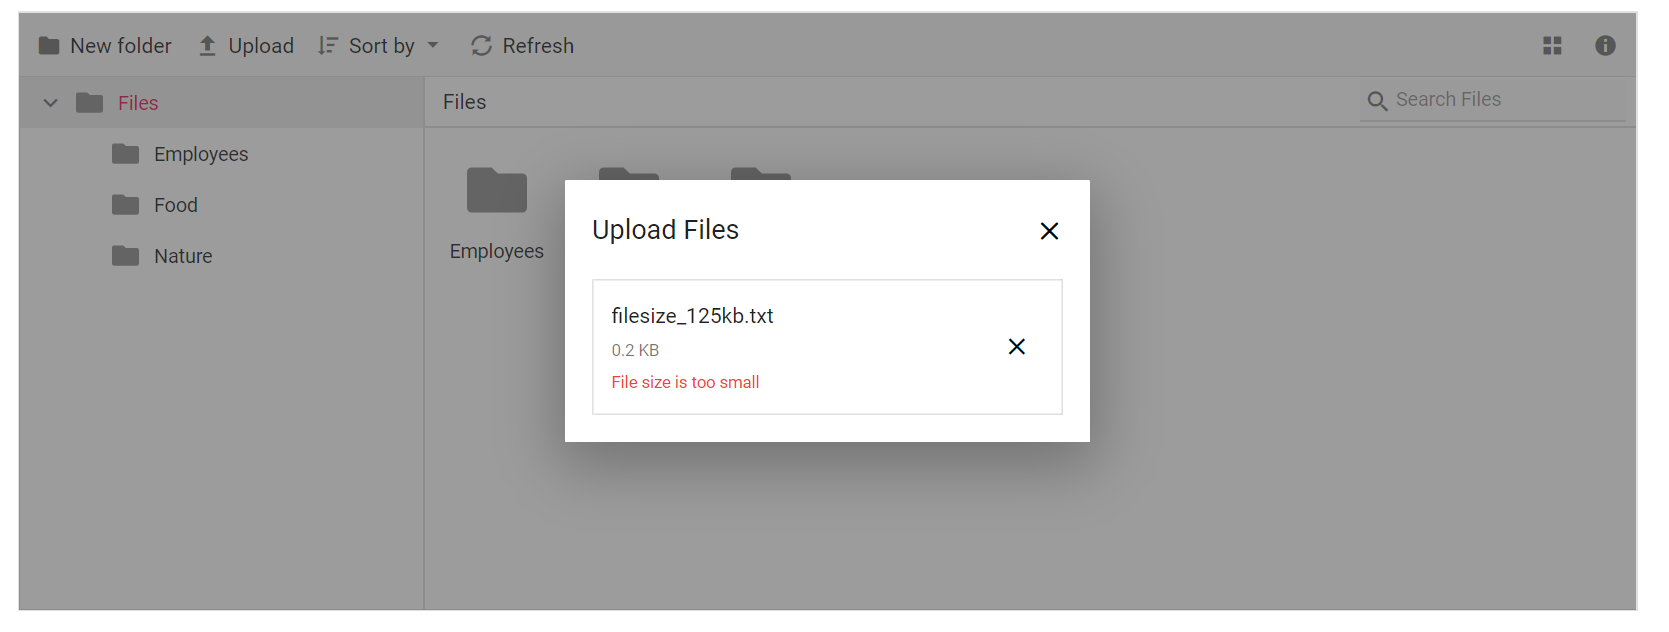 FileManager upload customization